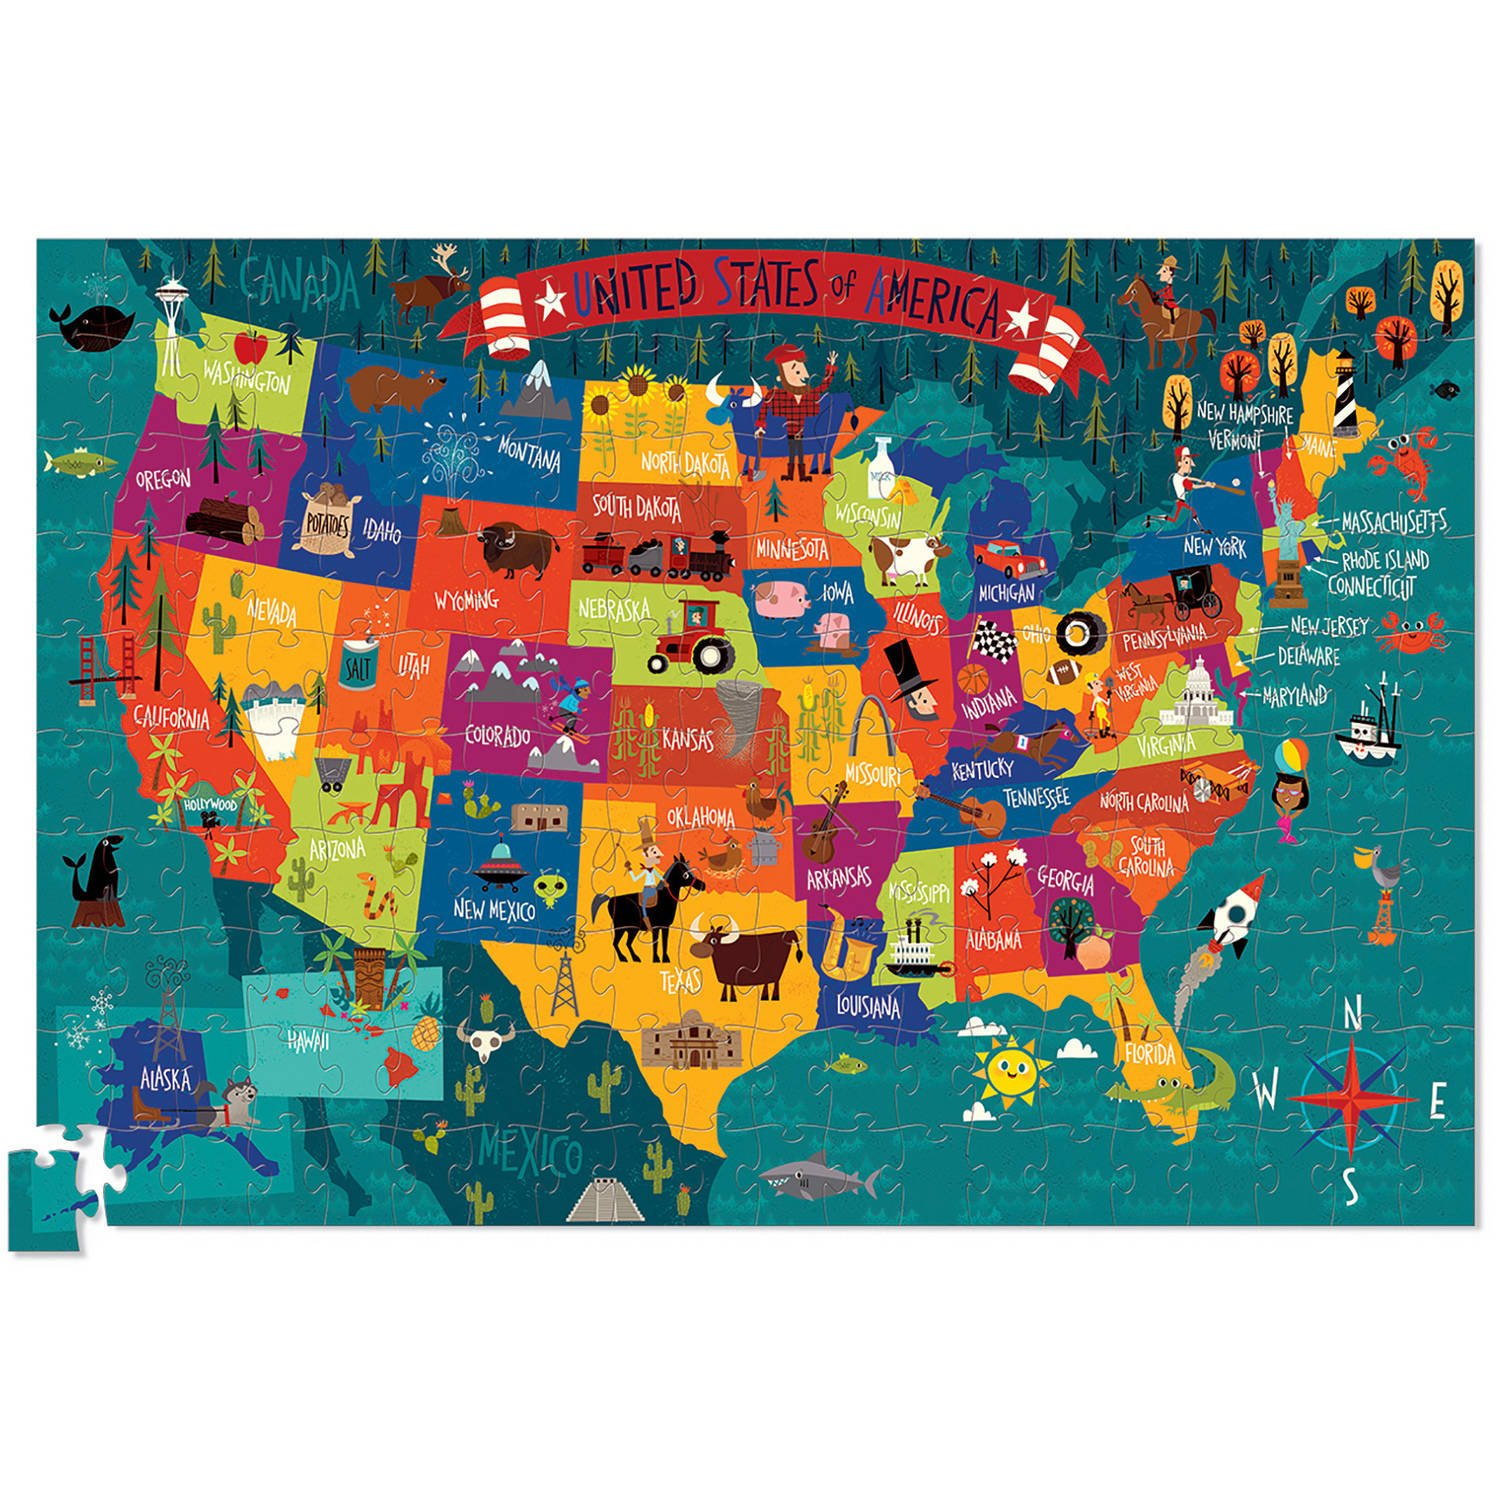 USA 200 Piece Puzzle And Poster by Crocodile Creek